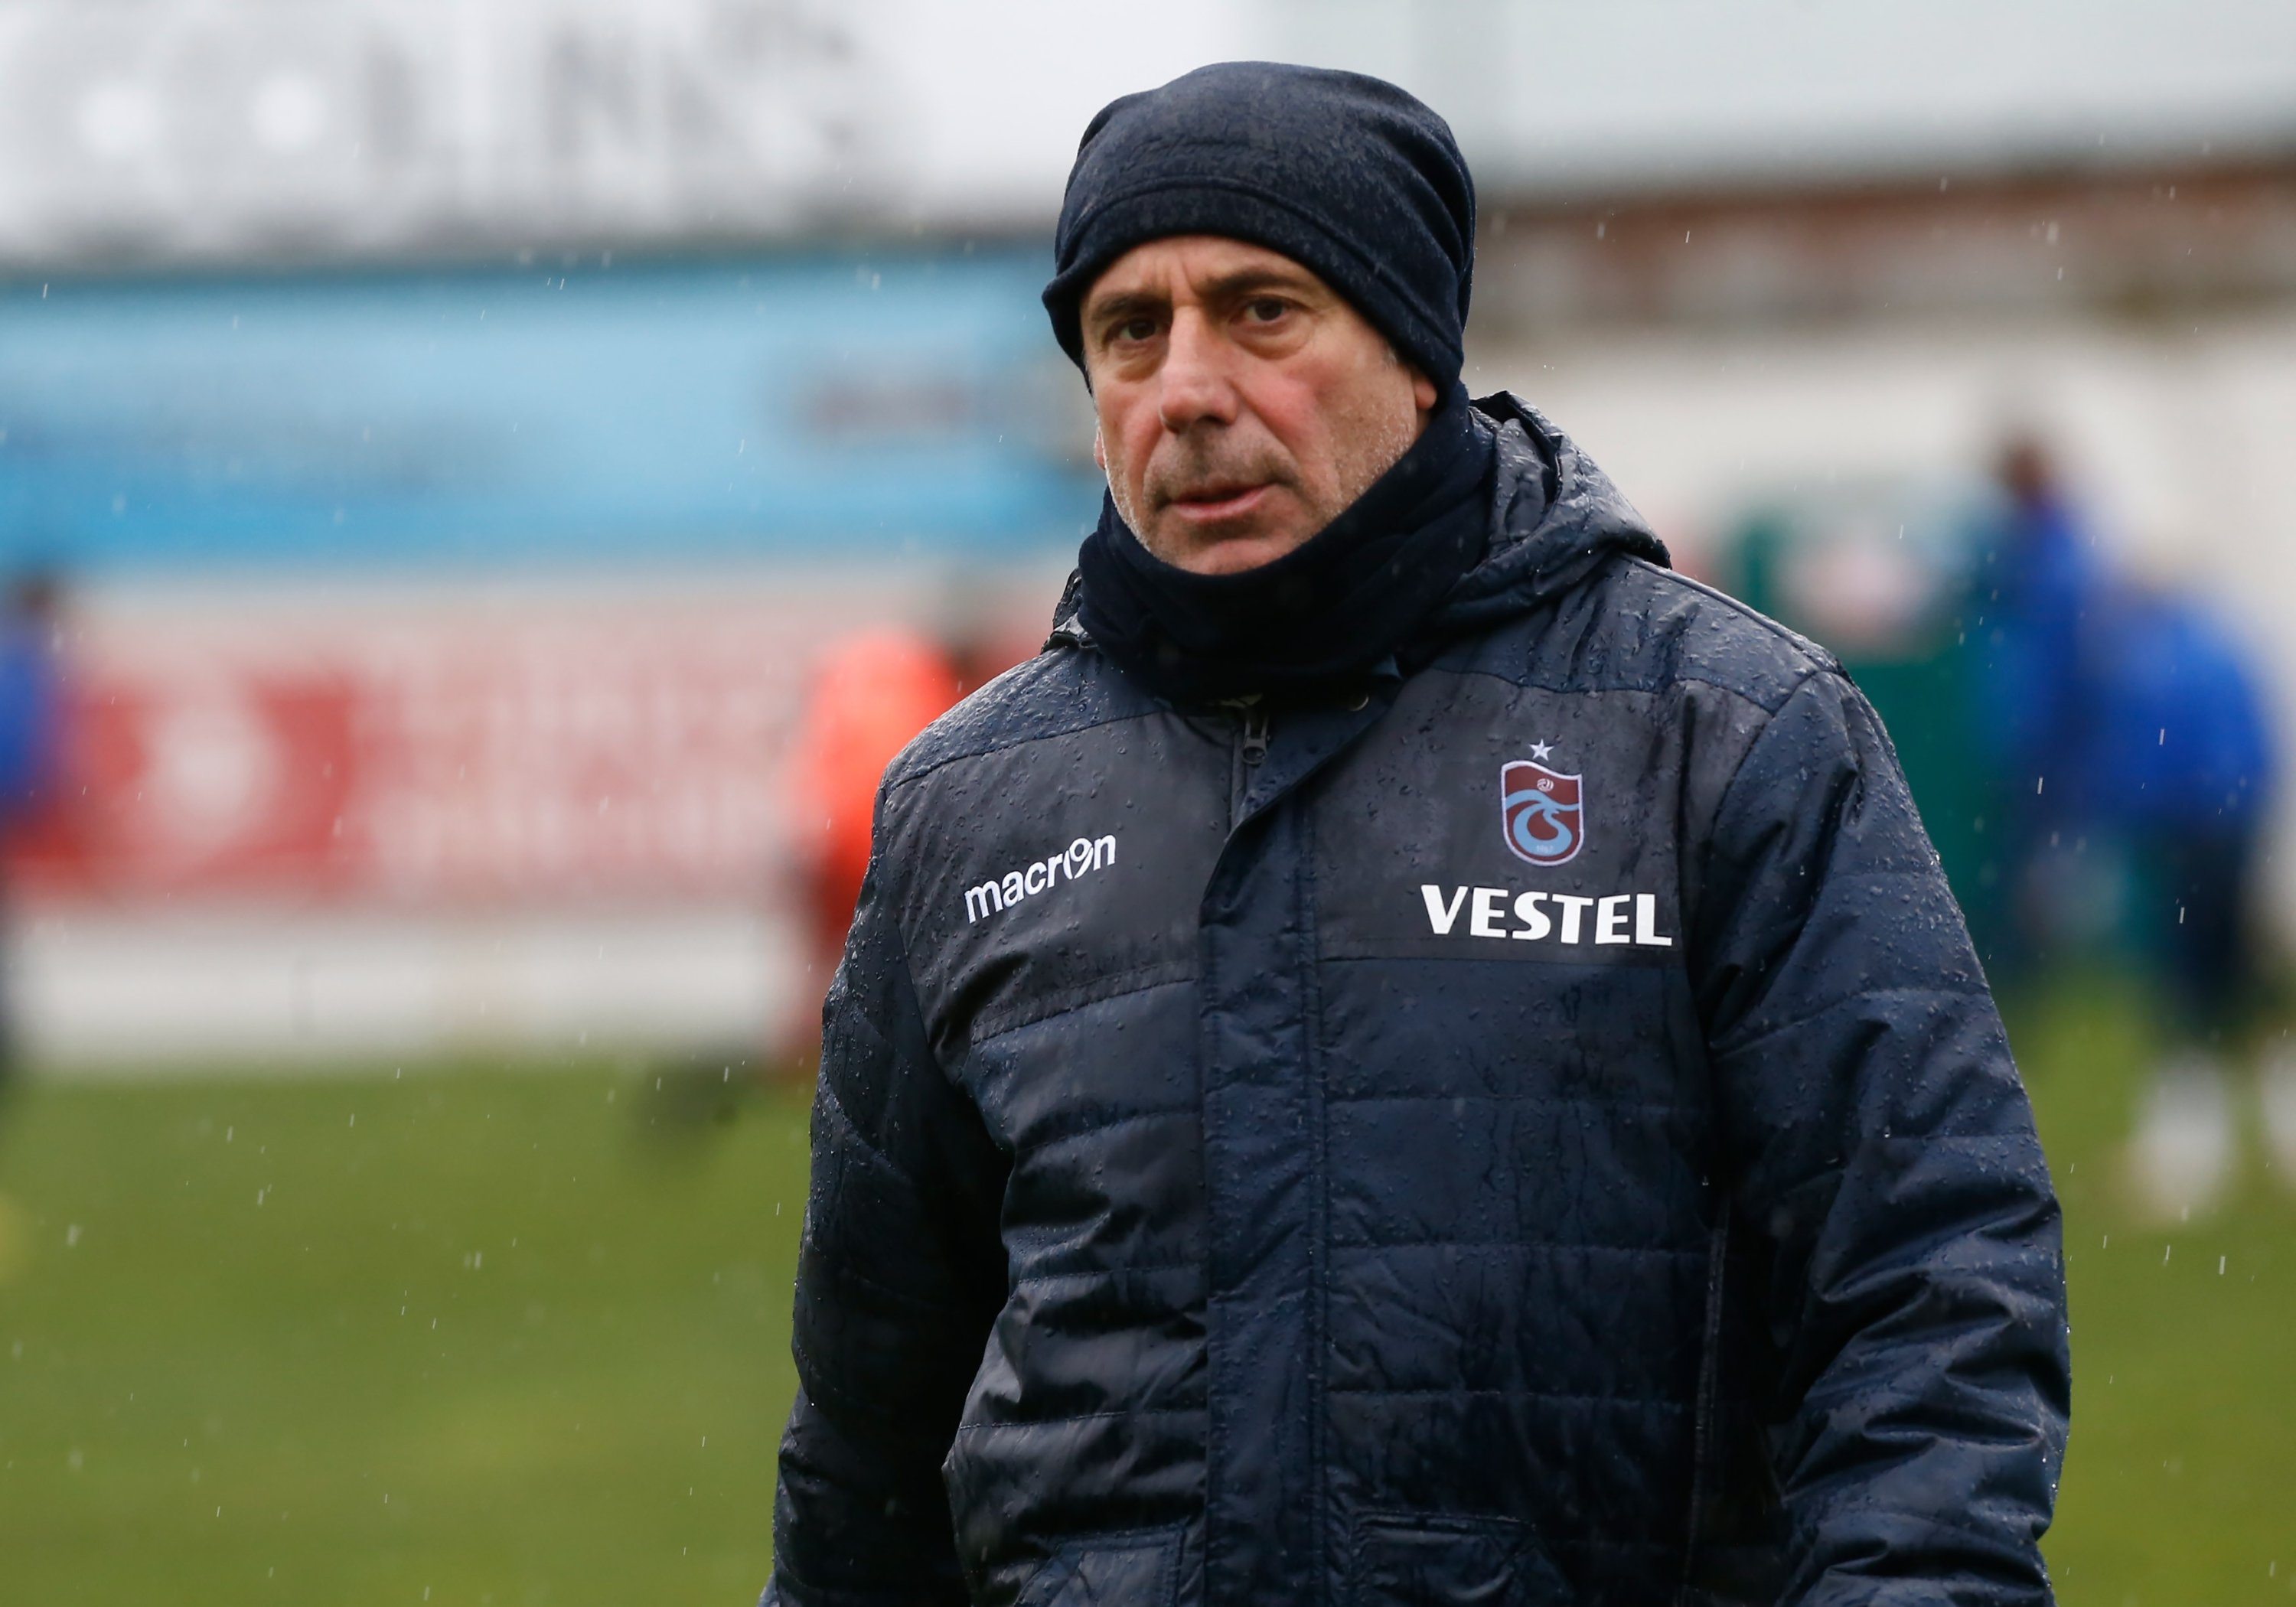 Trabzonspor coach Abdullah Avcı has overseen a transformation at the club since taking over last November. (IHA Photo)